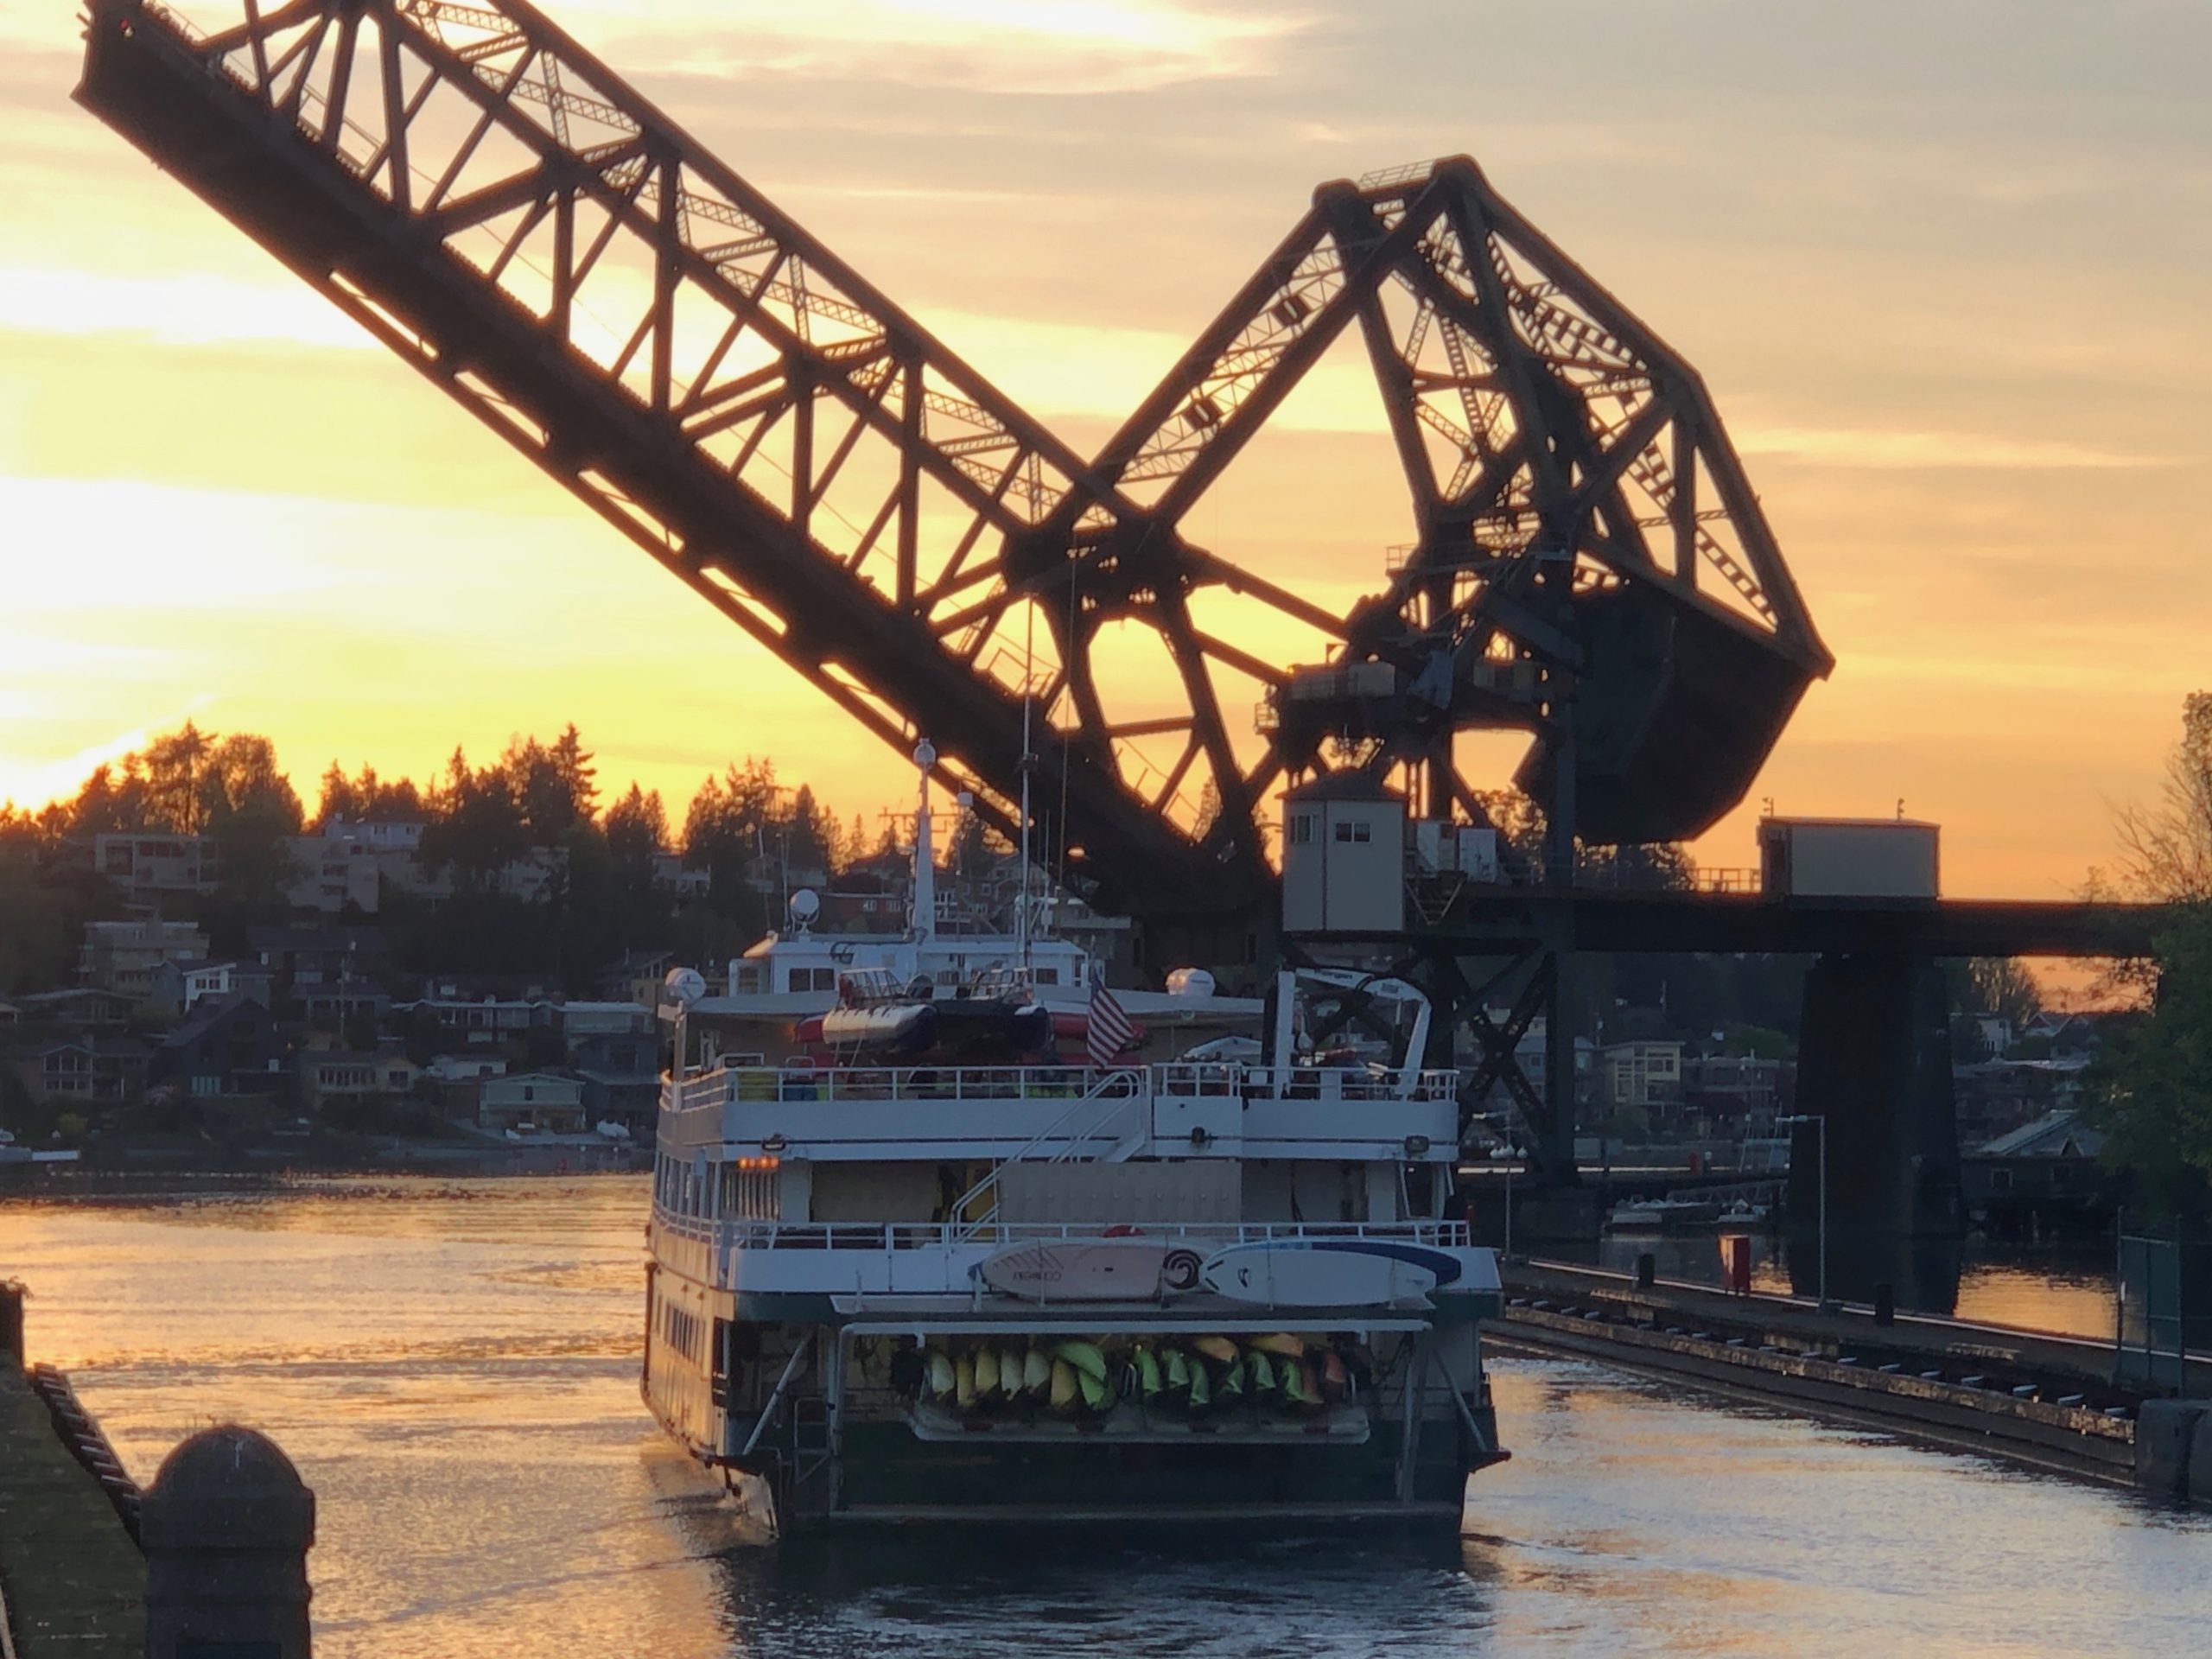 UnCruise Adventures will resume sailing in 2020 for departures in Alaska and the Pacific Northwest.